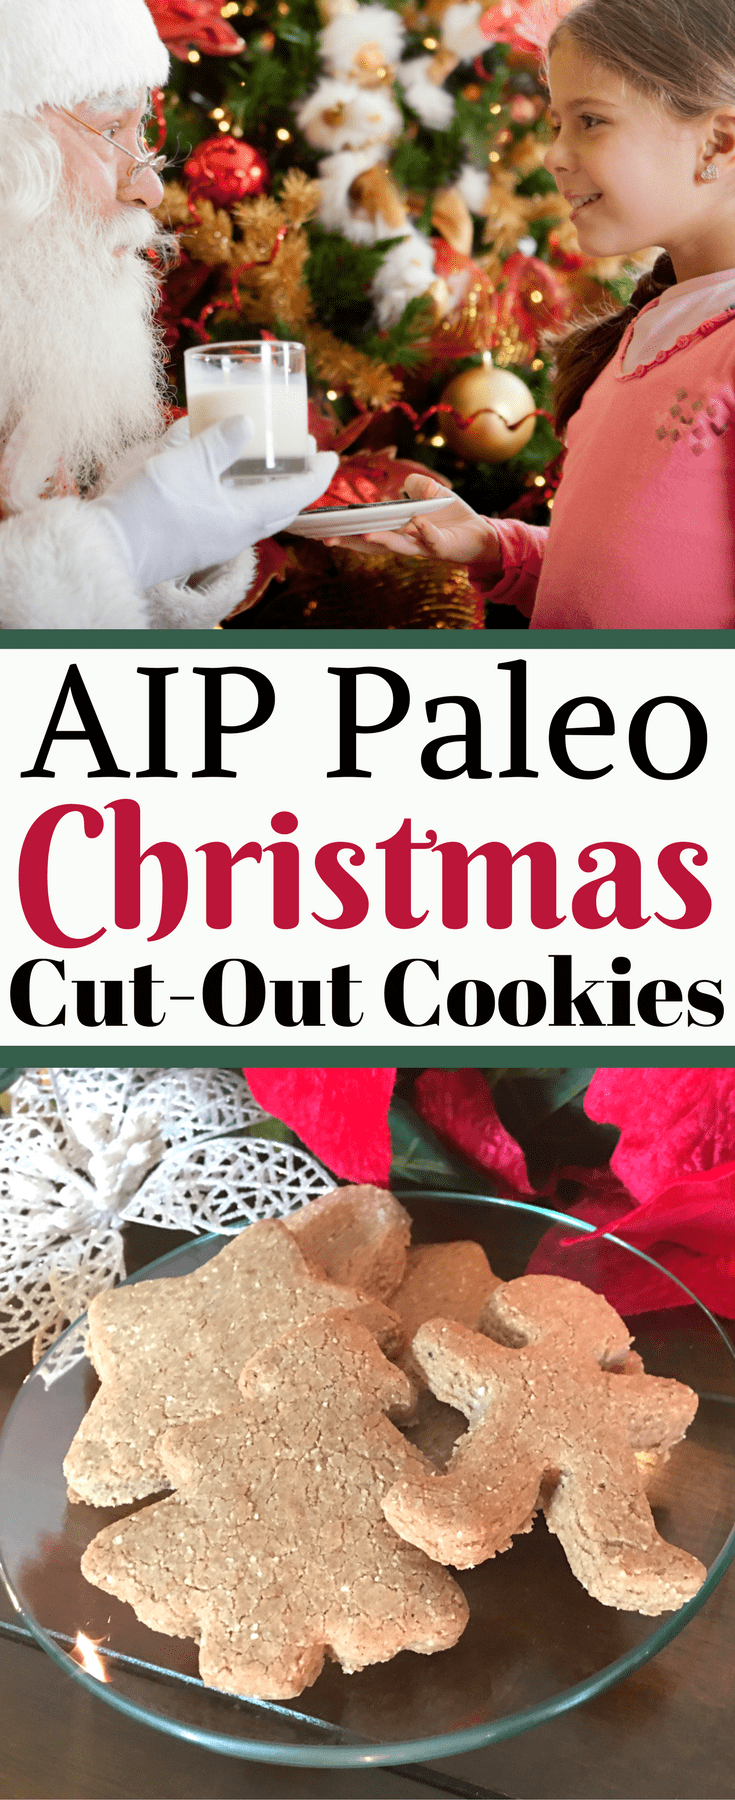 Autoimmune Paleo (AIP) approved Christmas Cut-Out Cookies are a great dessert to serve for family and holiday gatherings this winter, especially when you're unsure of food allergies at your gathering or party. It's a real treat that will be enjoyed by even the pickiest of eaters! This AIP cookie recipe is also Paleo, gluten-free, dairy-free, egg-free, soy-free, and refined sugar-free.